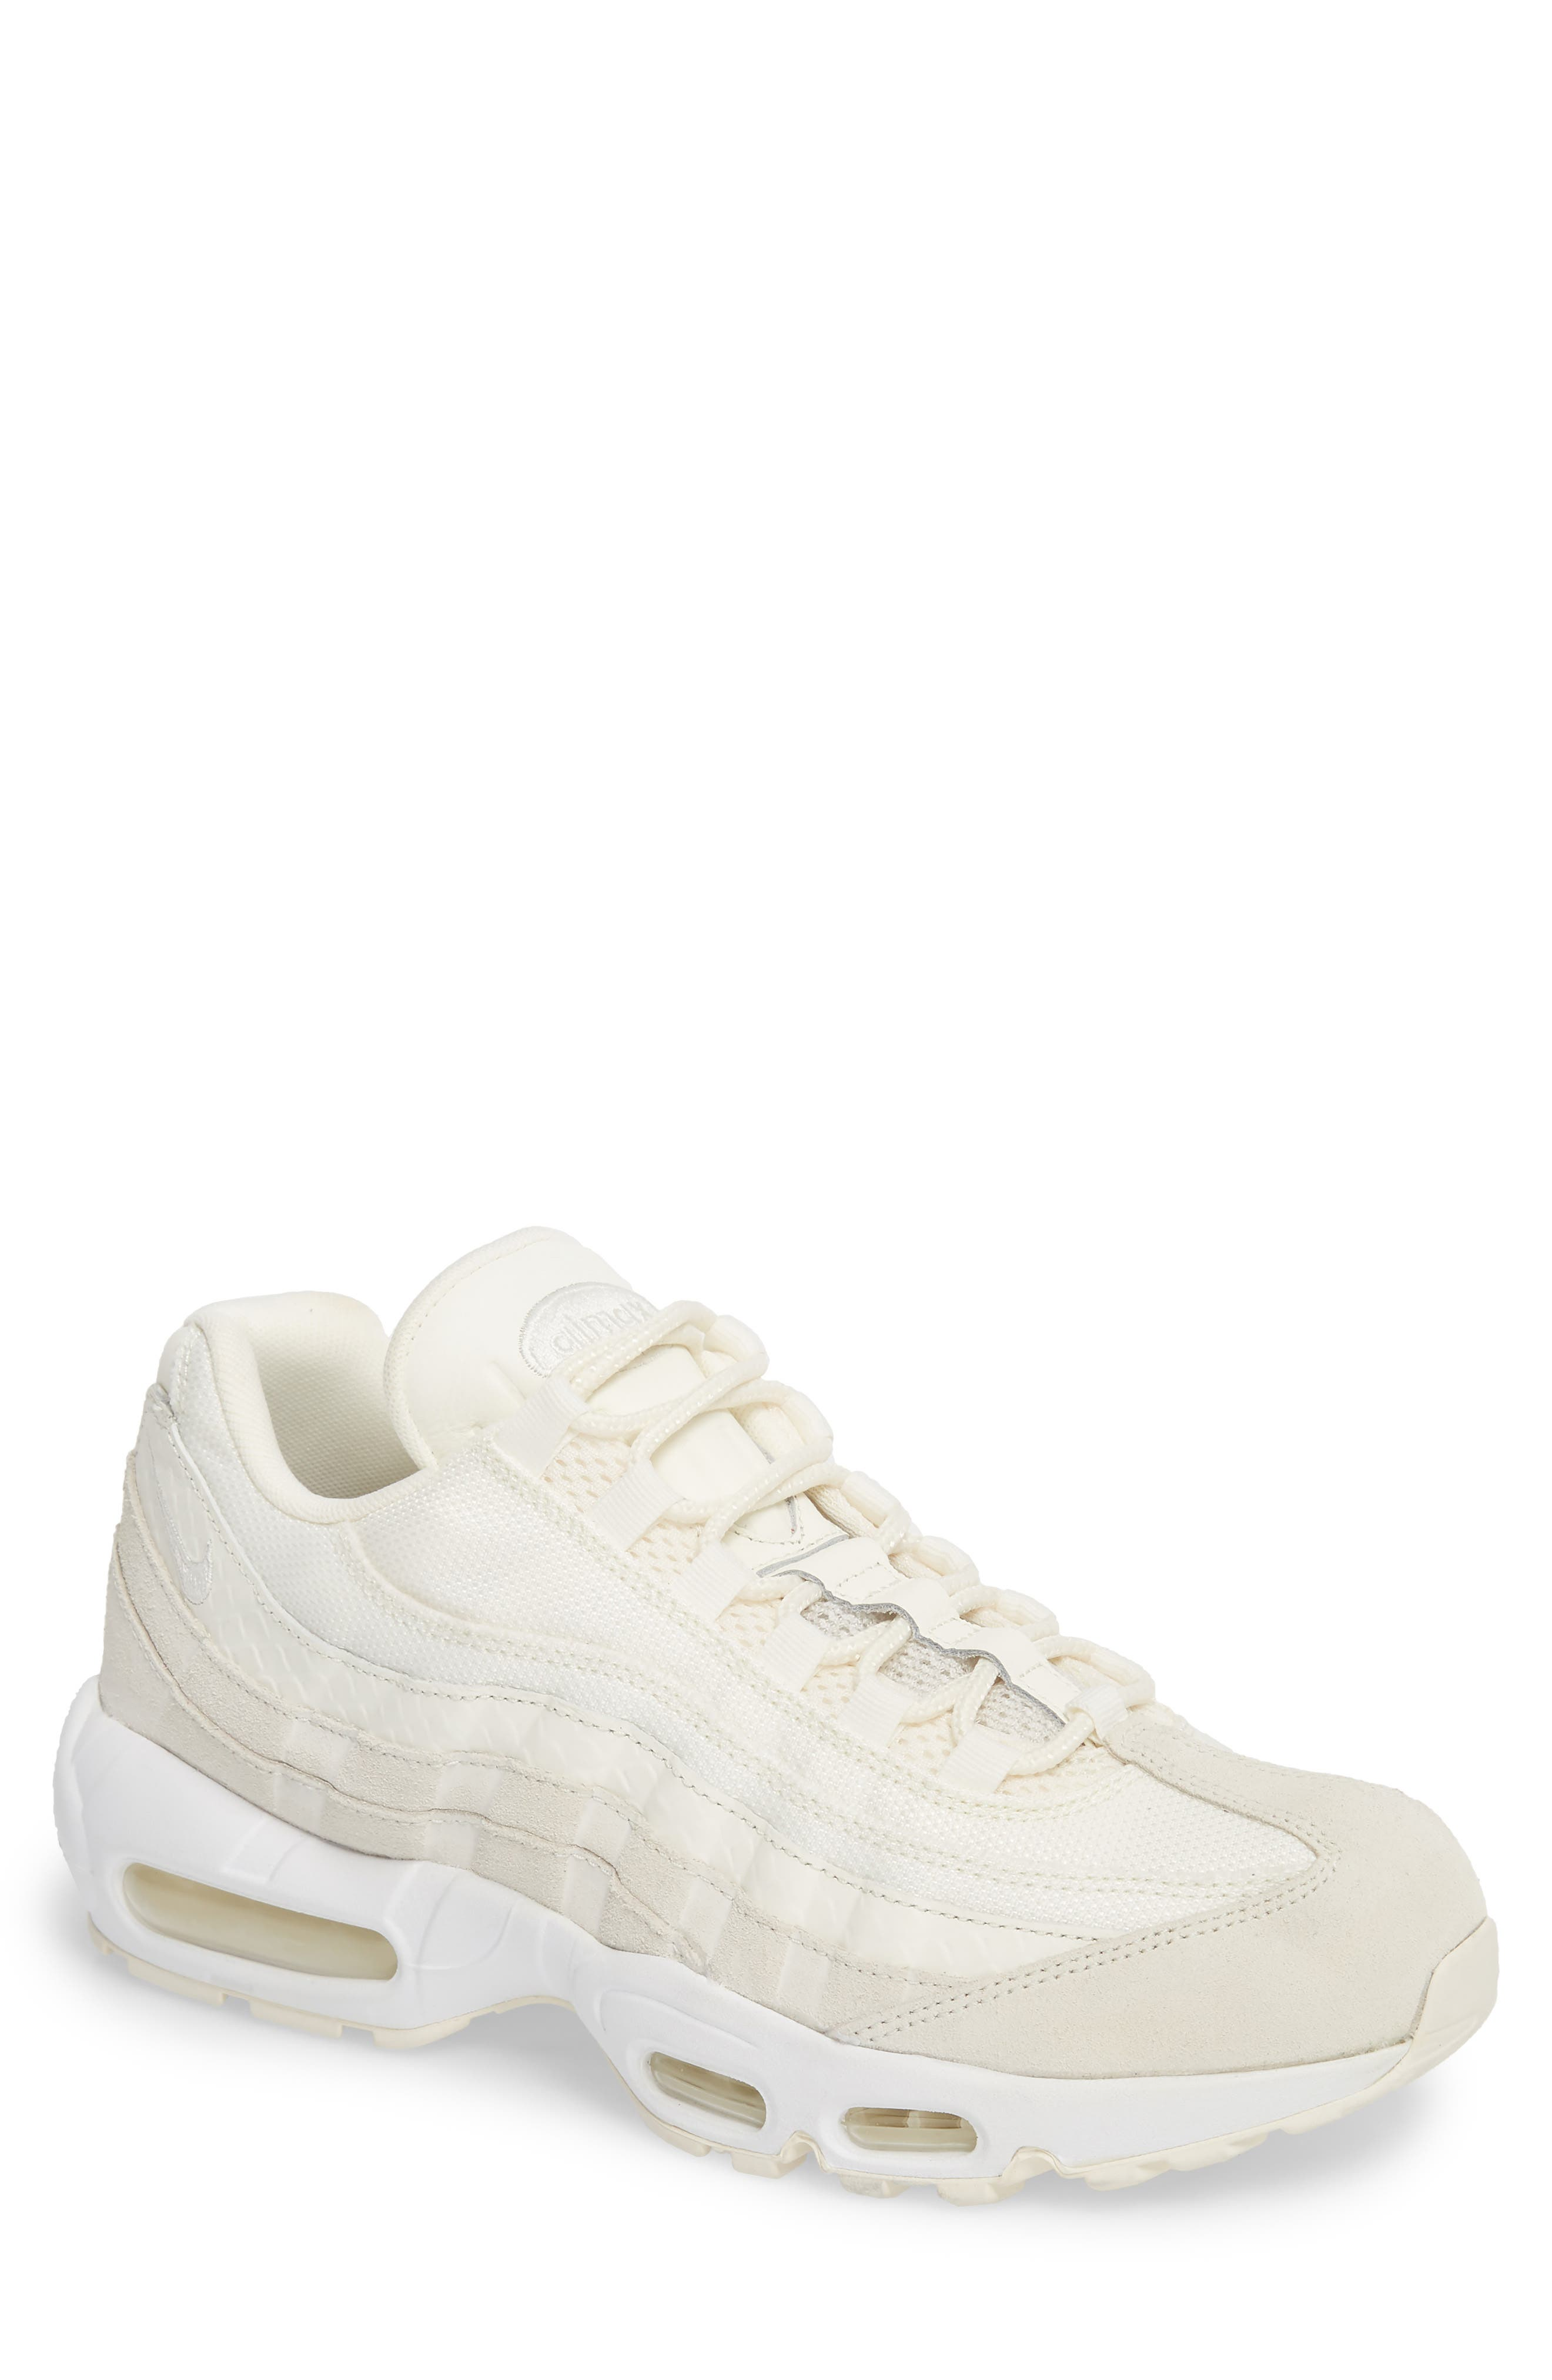 Nike Air Max 95 Sneaker (Men)